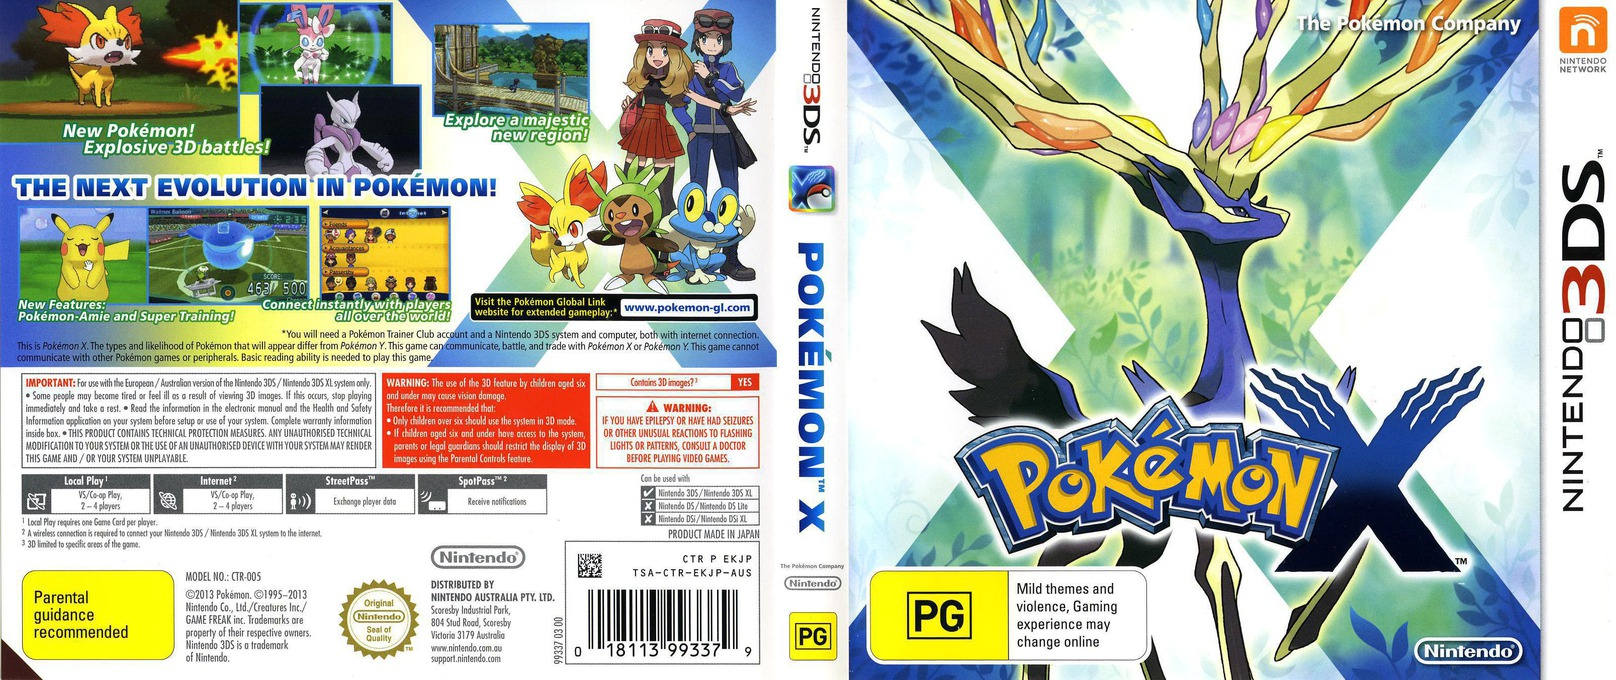 Pokémon X 3DS coverfullHQ (EKJP)